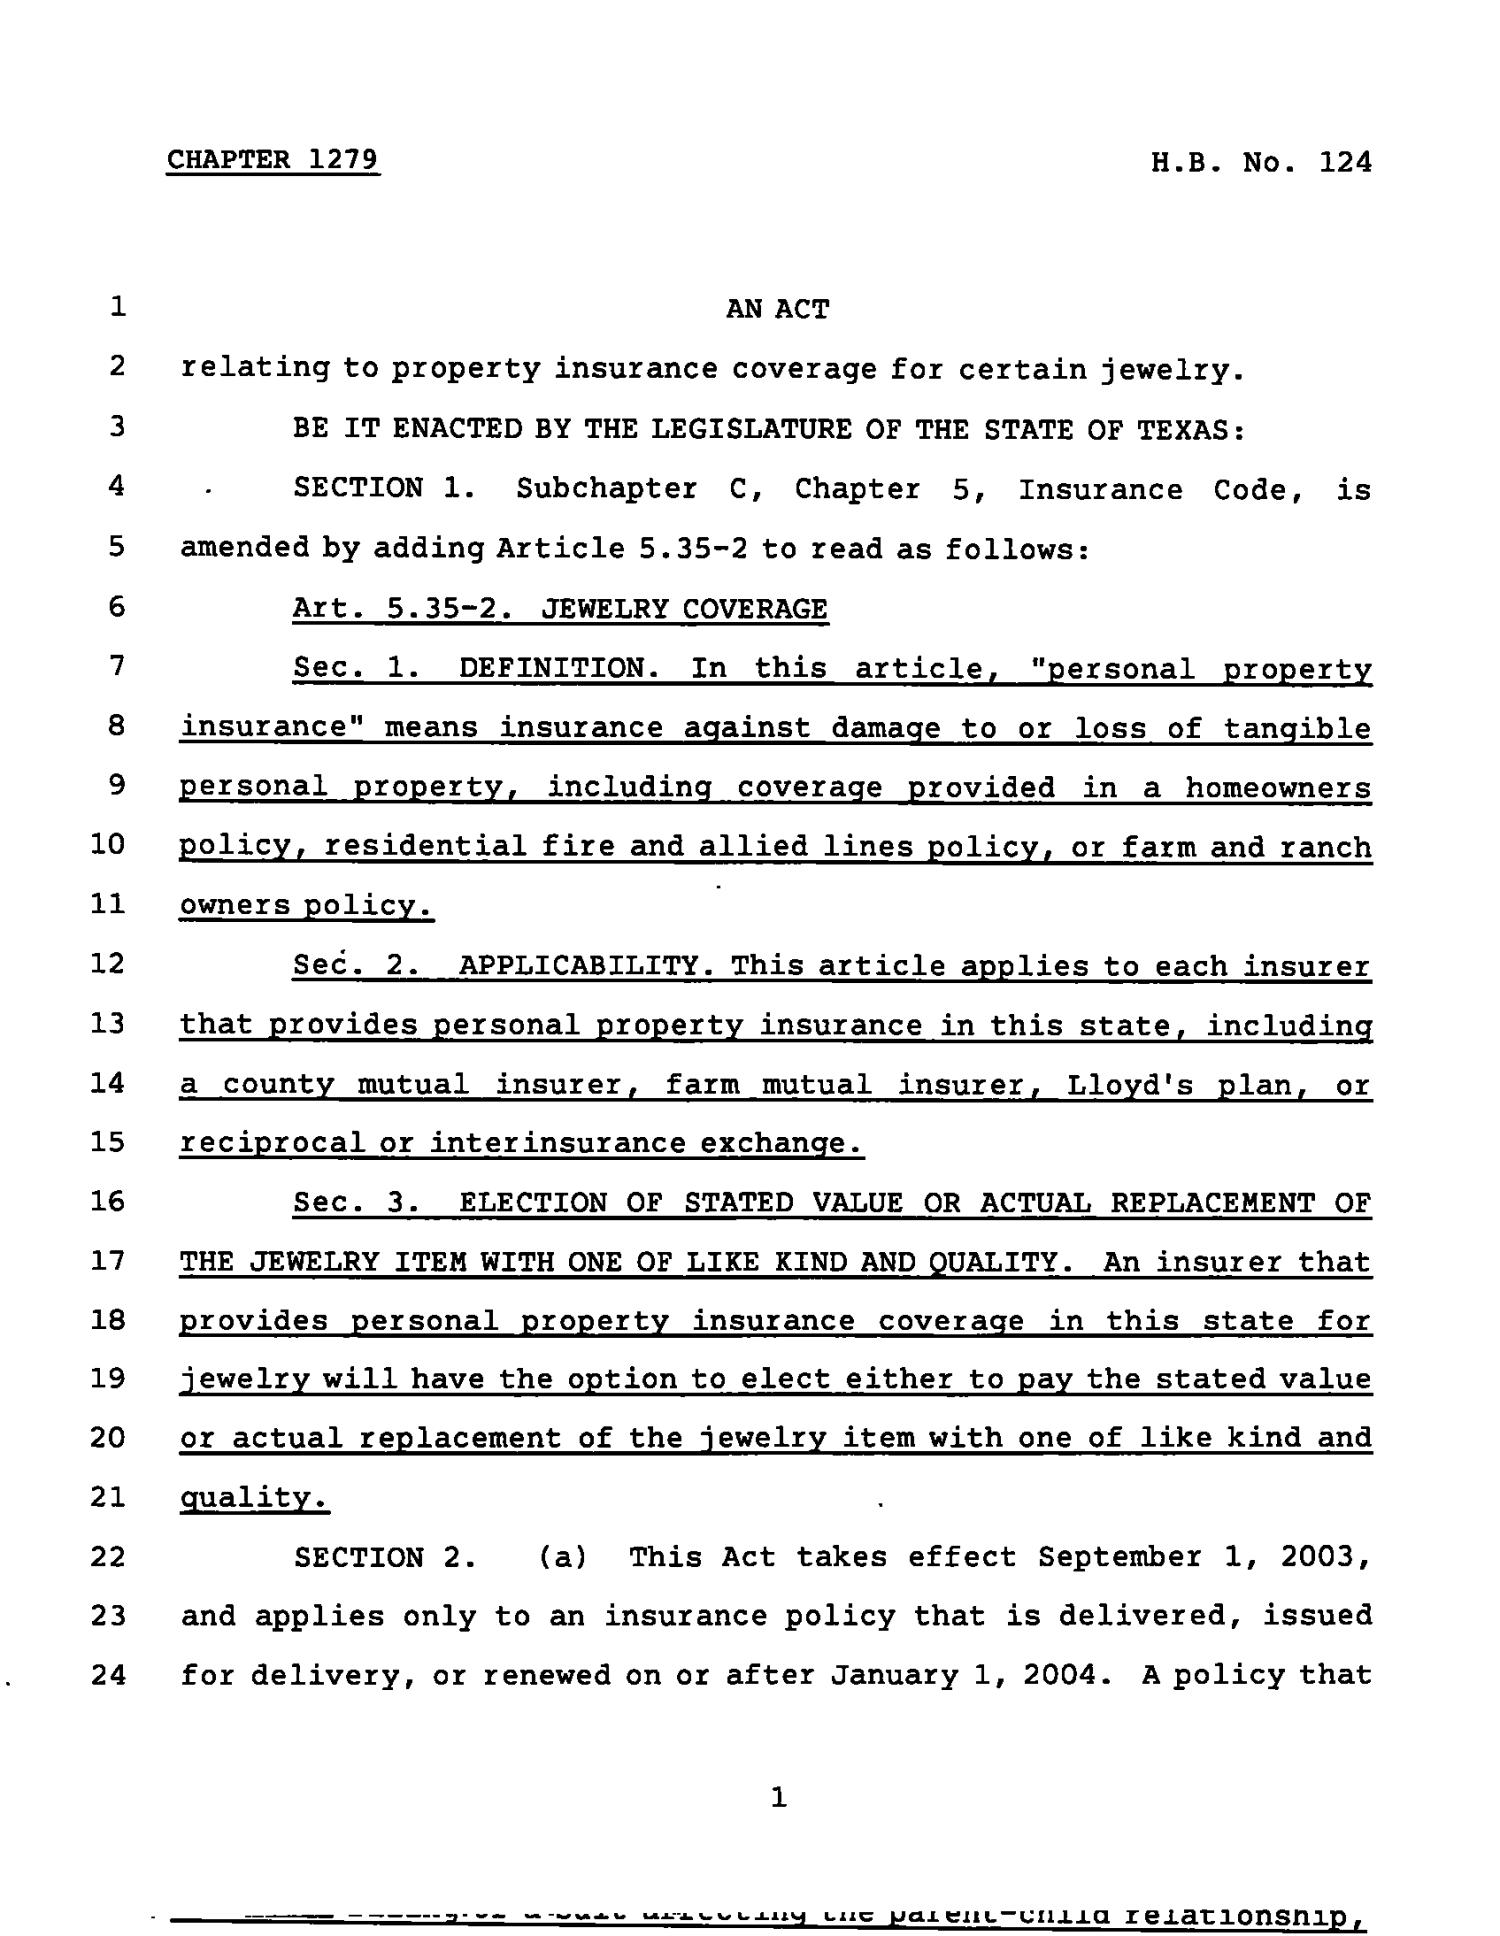 78th Texas Legislature, Regular Session, House Bill 124, Chapter 1279                                                                                                      [Sequence #]: 1 of 3